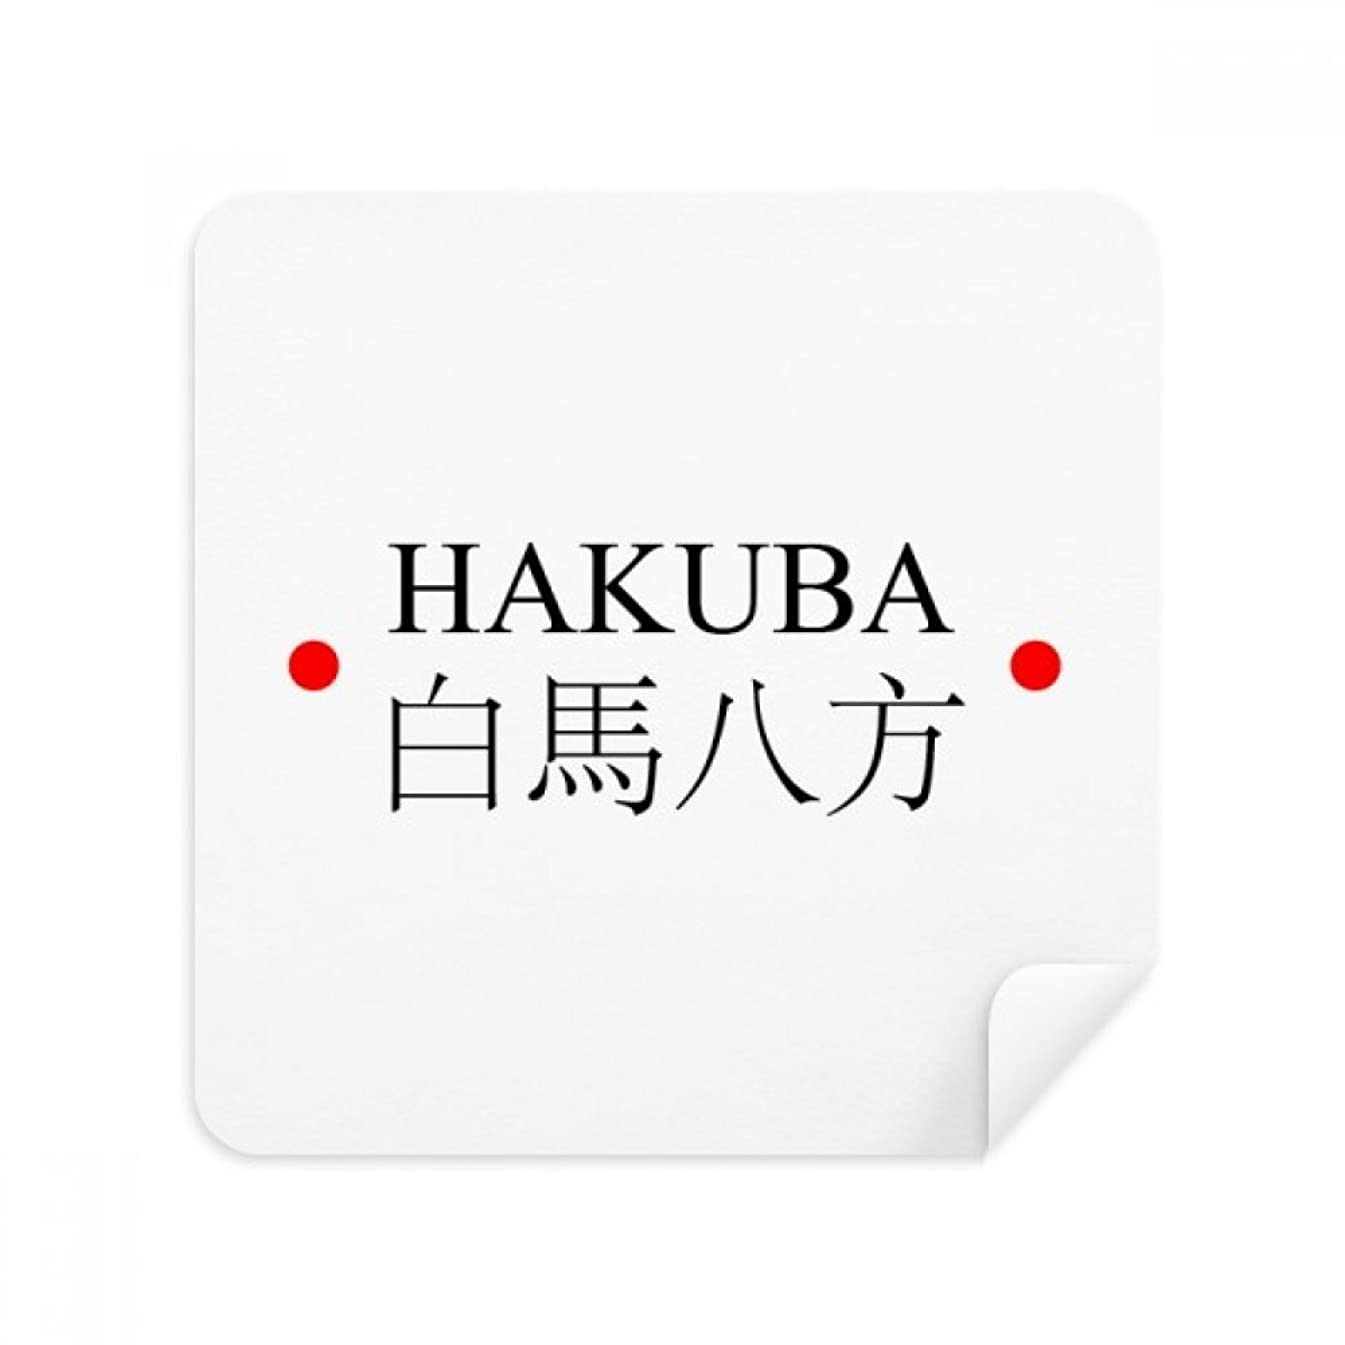 Hakuba Japaness City Name Red Sun Flag Glasses Cleaning Cloth Phone Screen Cleaner Suede Fabric 2pcs